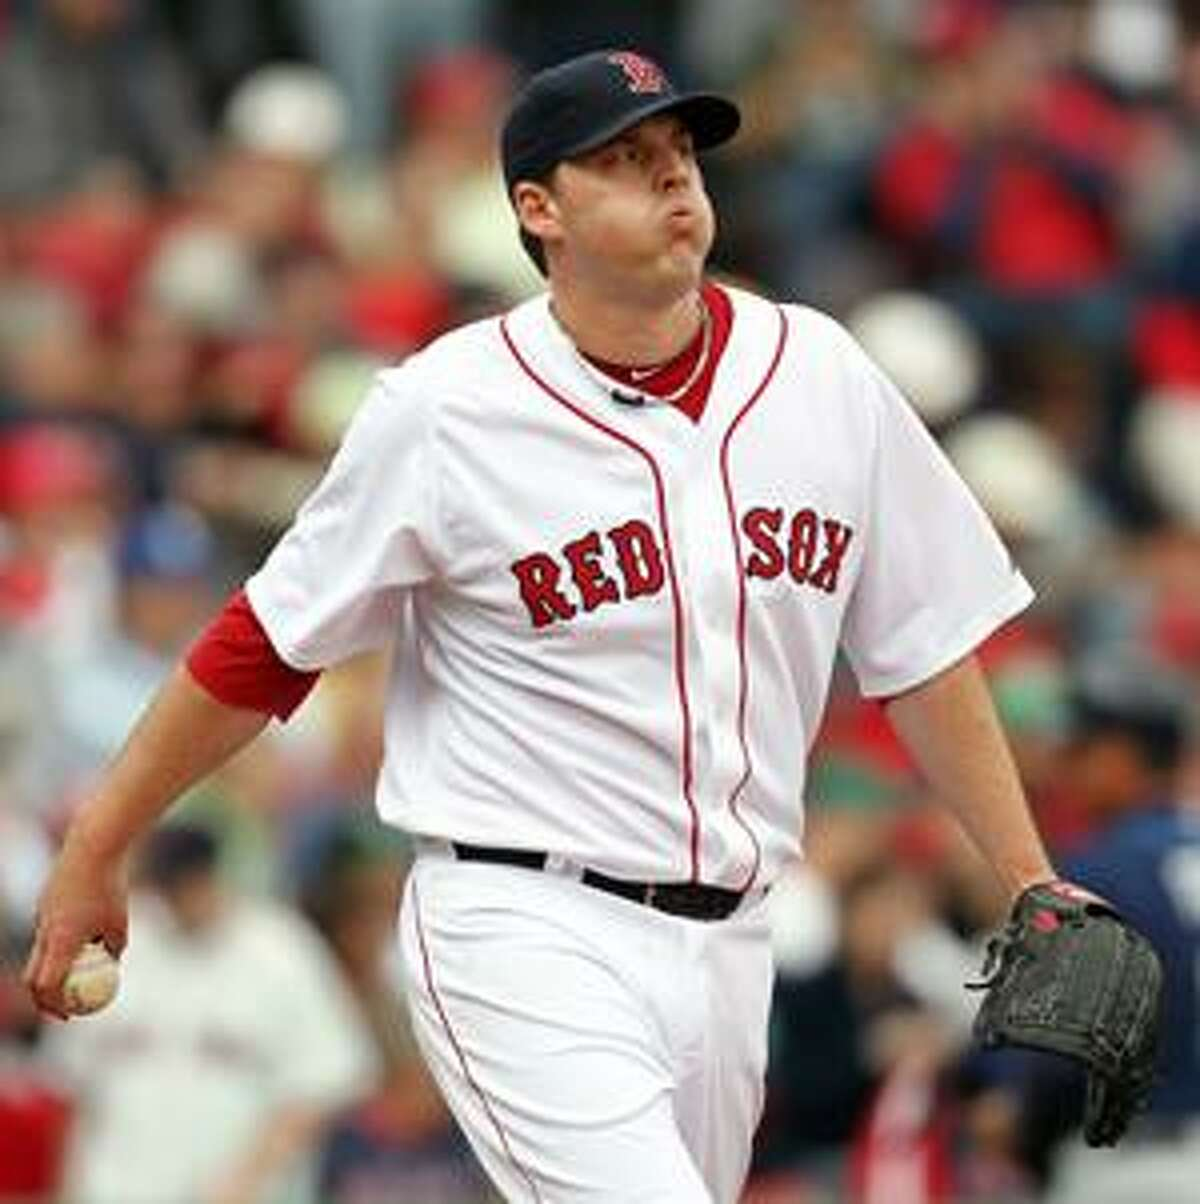 Boston Red Sox starting pitcher John Lackey walks back to the mound just before being pulled out of the game during the fourth inning against the Tampa Bay Rays in a MLB baseball game at Fenway Park in Boston Monday, April 19, 2010. (AP Photo/Winslow Townson)